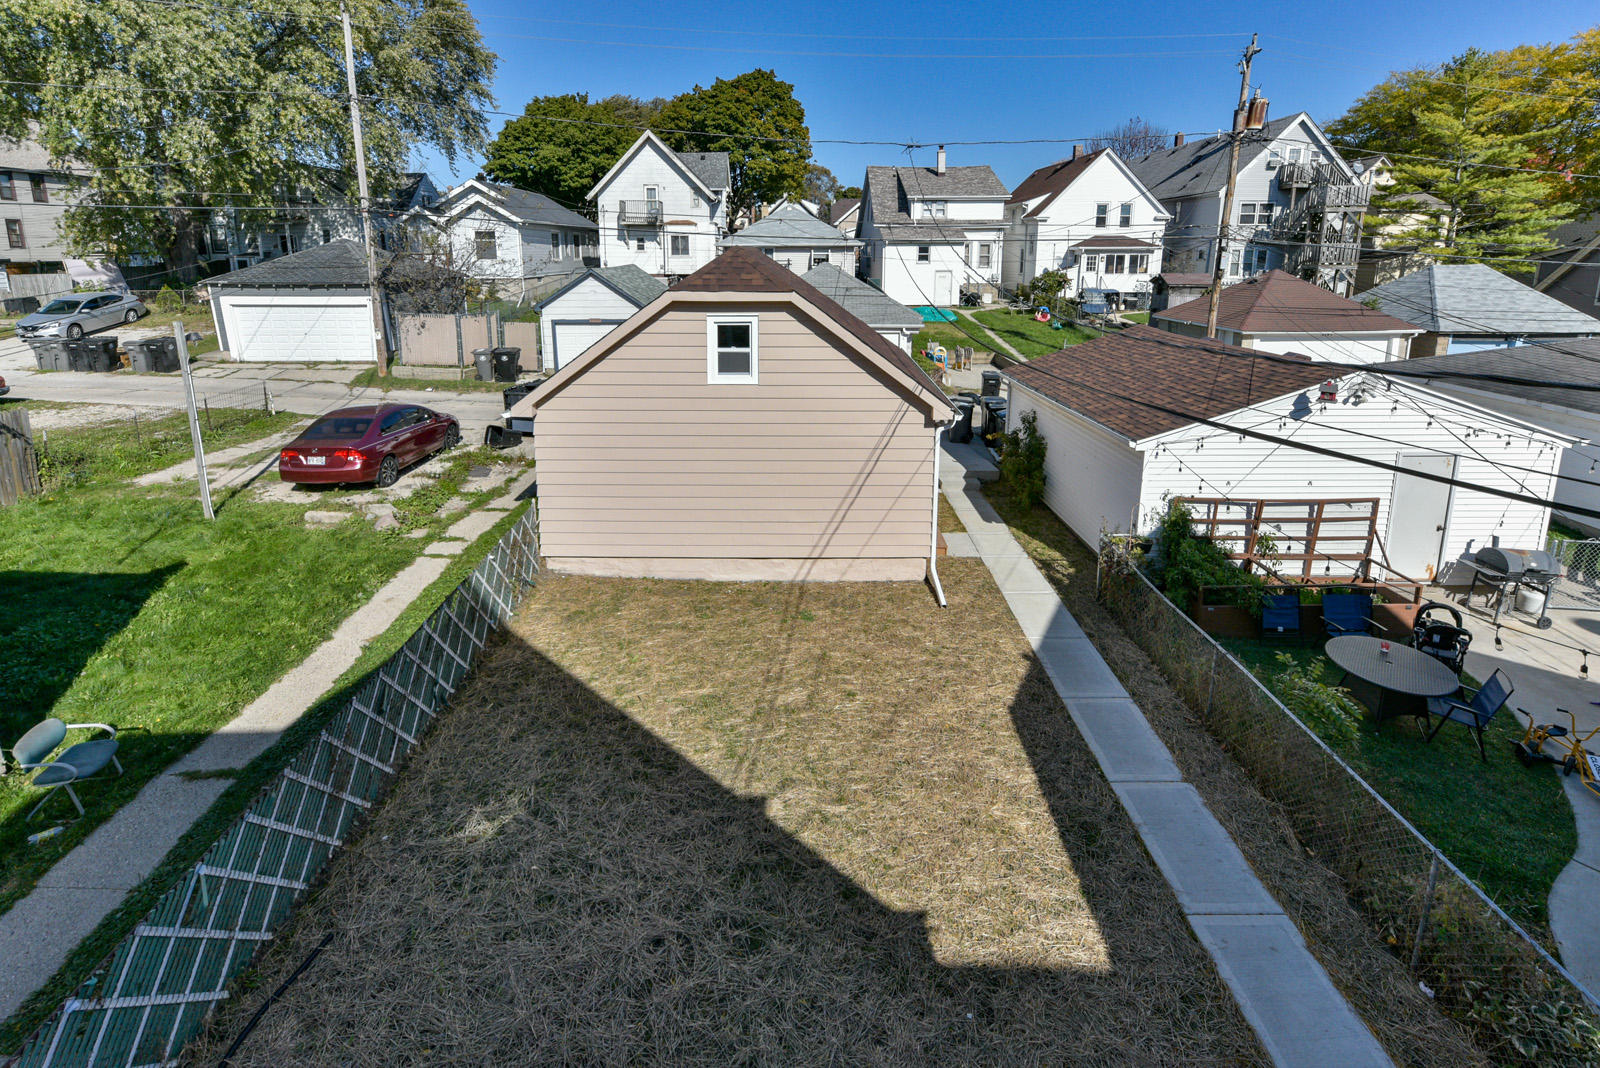 3740 Layton Ave, Cudahy, Wisconsin 53110, 2 Bedrooms Bedrooms, 4 Rooms Rooms,1 BathroomBathrooms,Two-Family,For Sale,Layton Ave,1,1715619